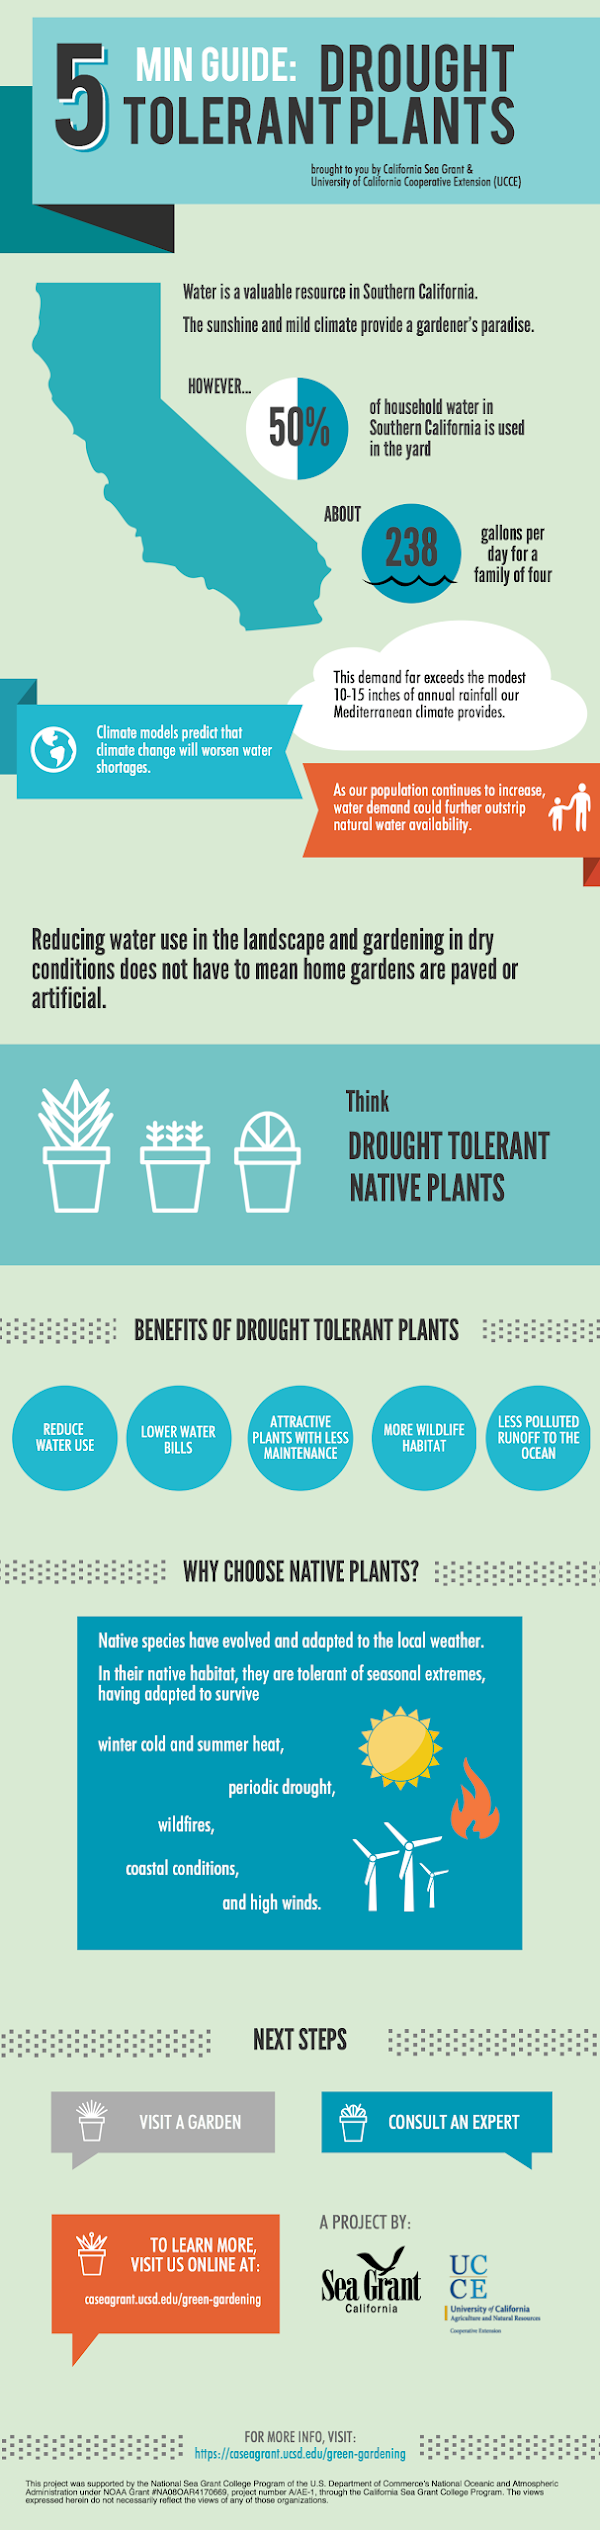 infographic: 5 min guide to drought tolerant plants